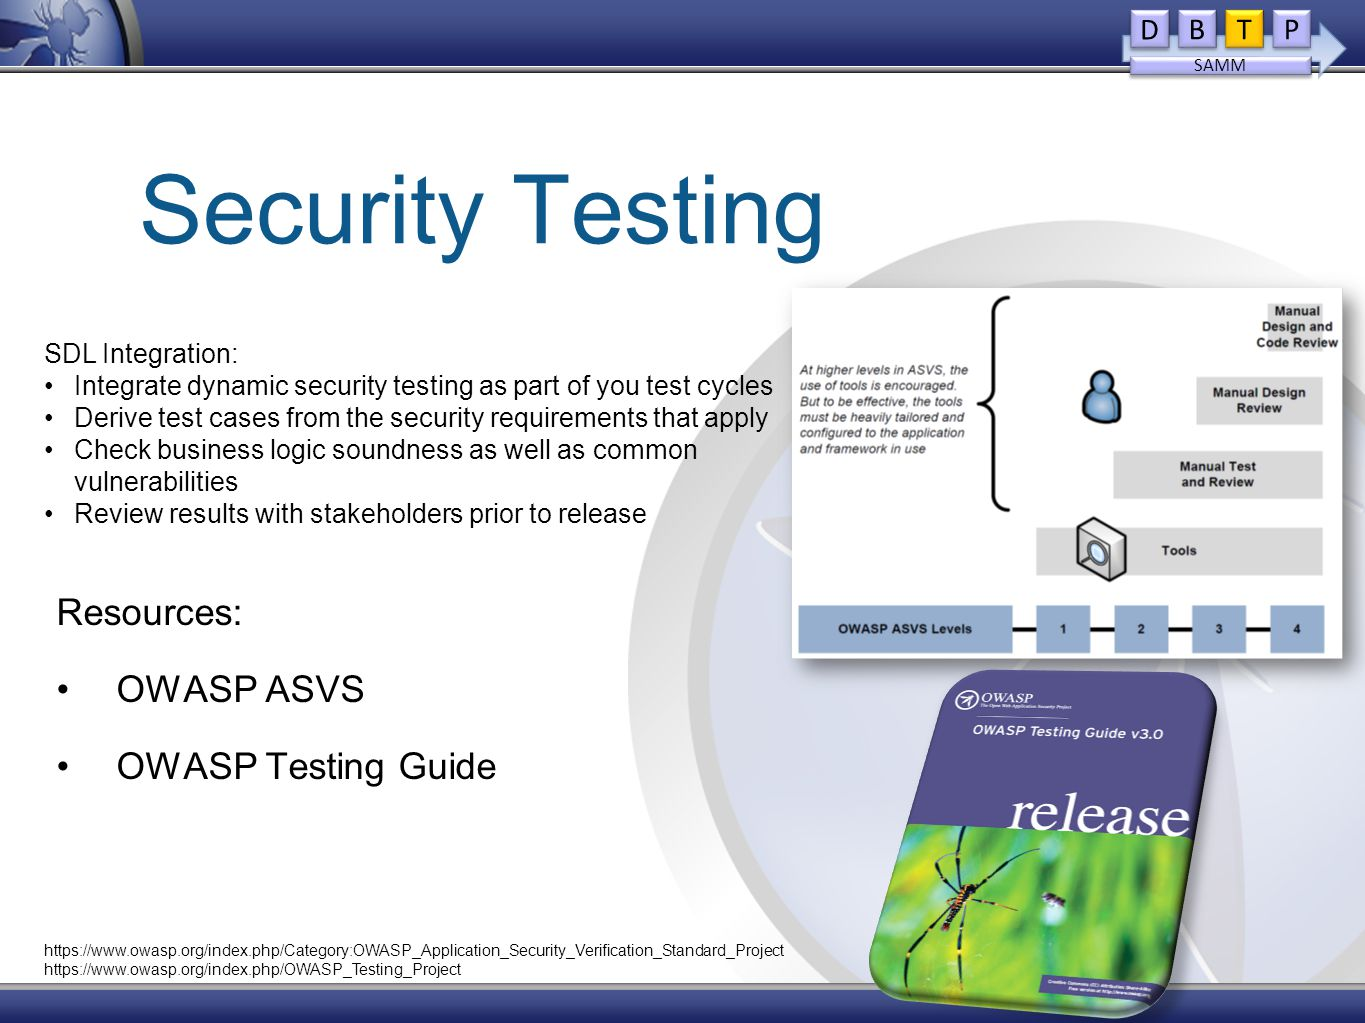 Security Testing Resources: OWASP ASVS OWASP Testing Guide SDL Integration: Integrate dynamic security testing as part of you test cycles Derive test cases from the security requirements that apply Check business logic soundness as well as common vulnerabilities Review results with stakeholders prior to release D D B B T T P P SAMM https://www.owasp.org/index.php/Category:OWASP_Application_Security_Verification_Standard_Project https://www.owasp.org/index.php/OWASP_Testing_Project